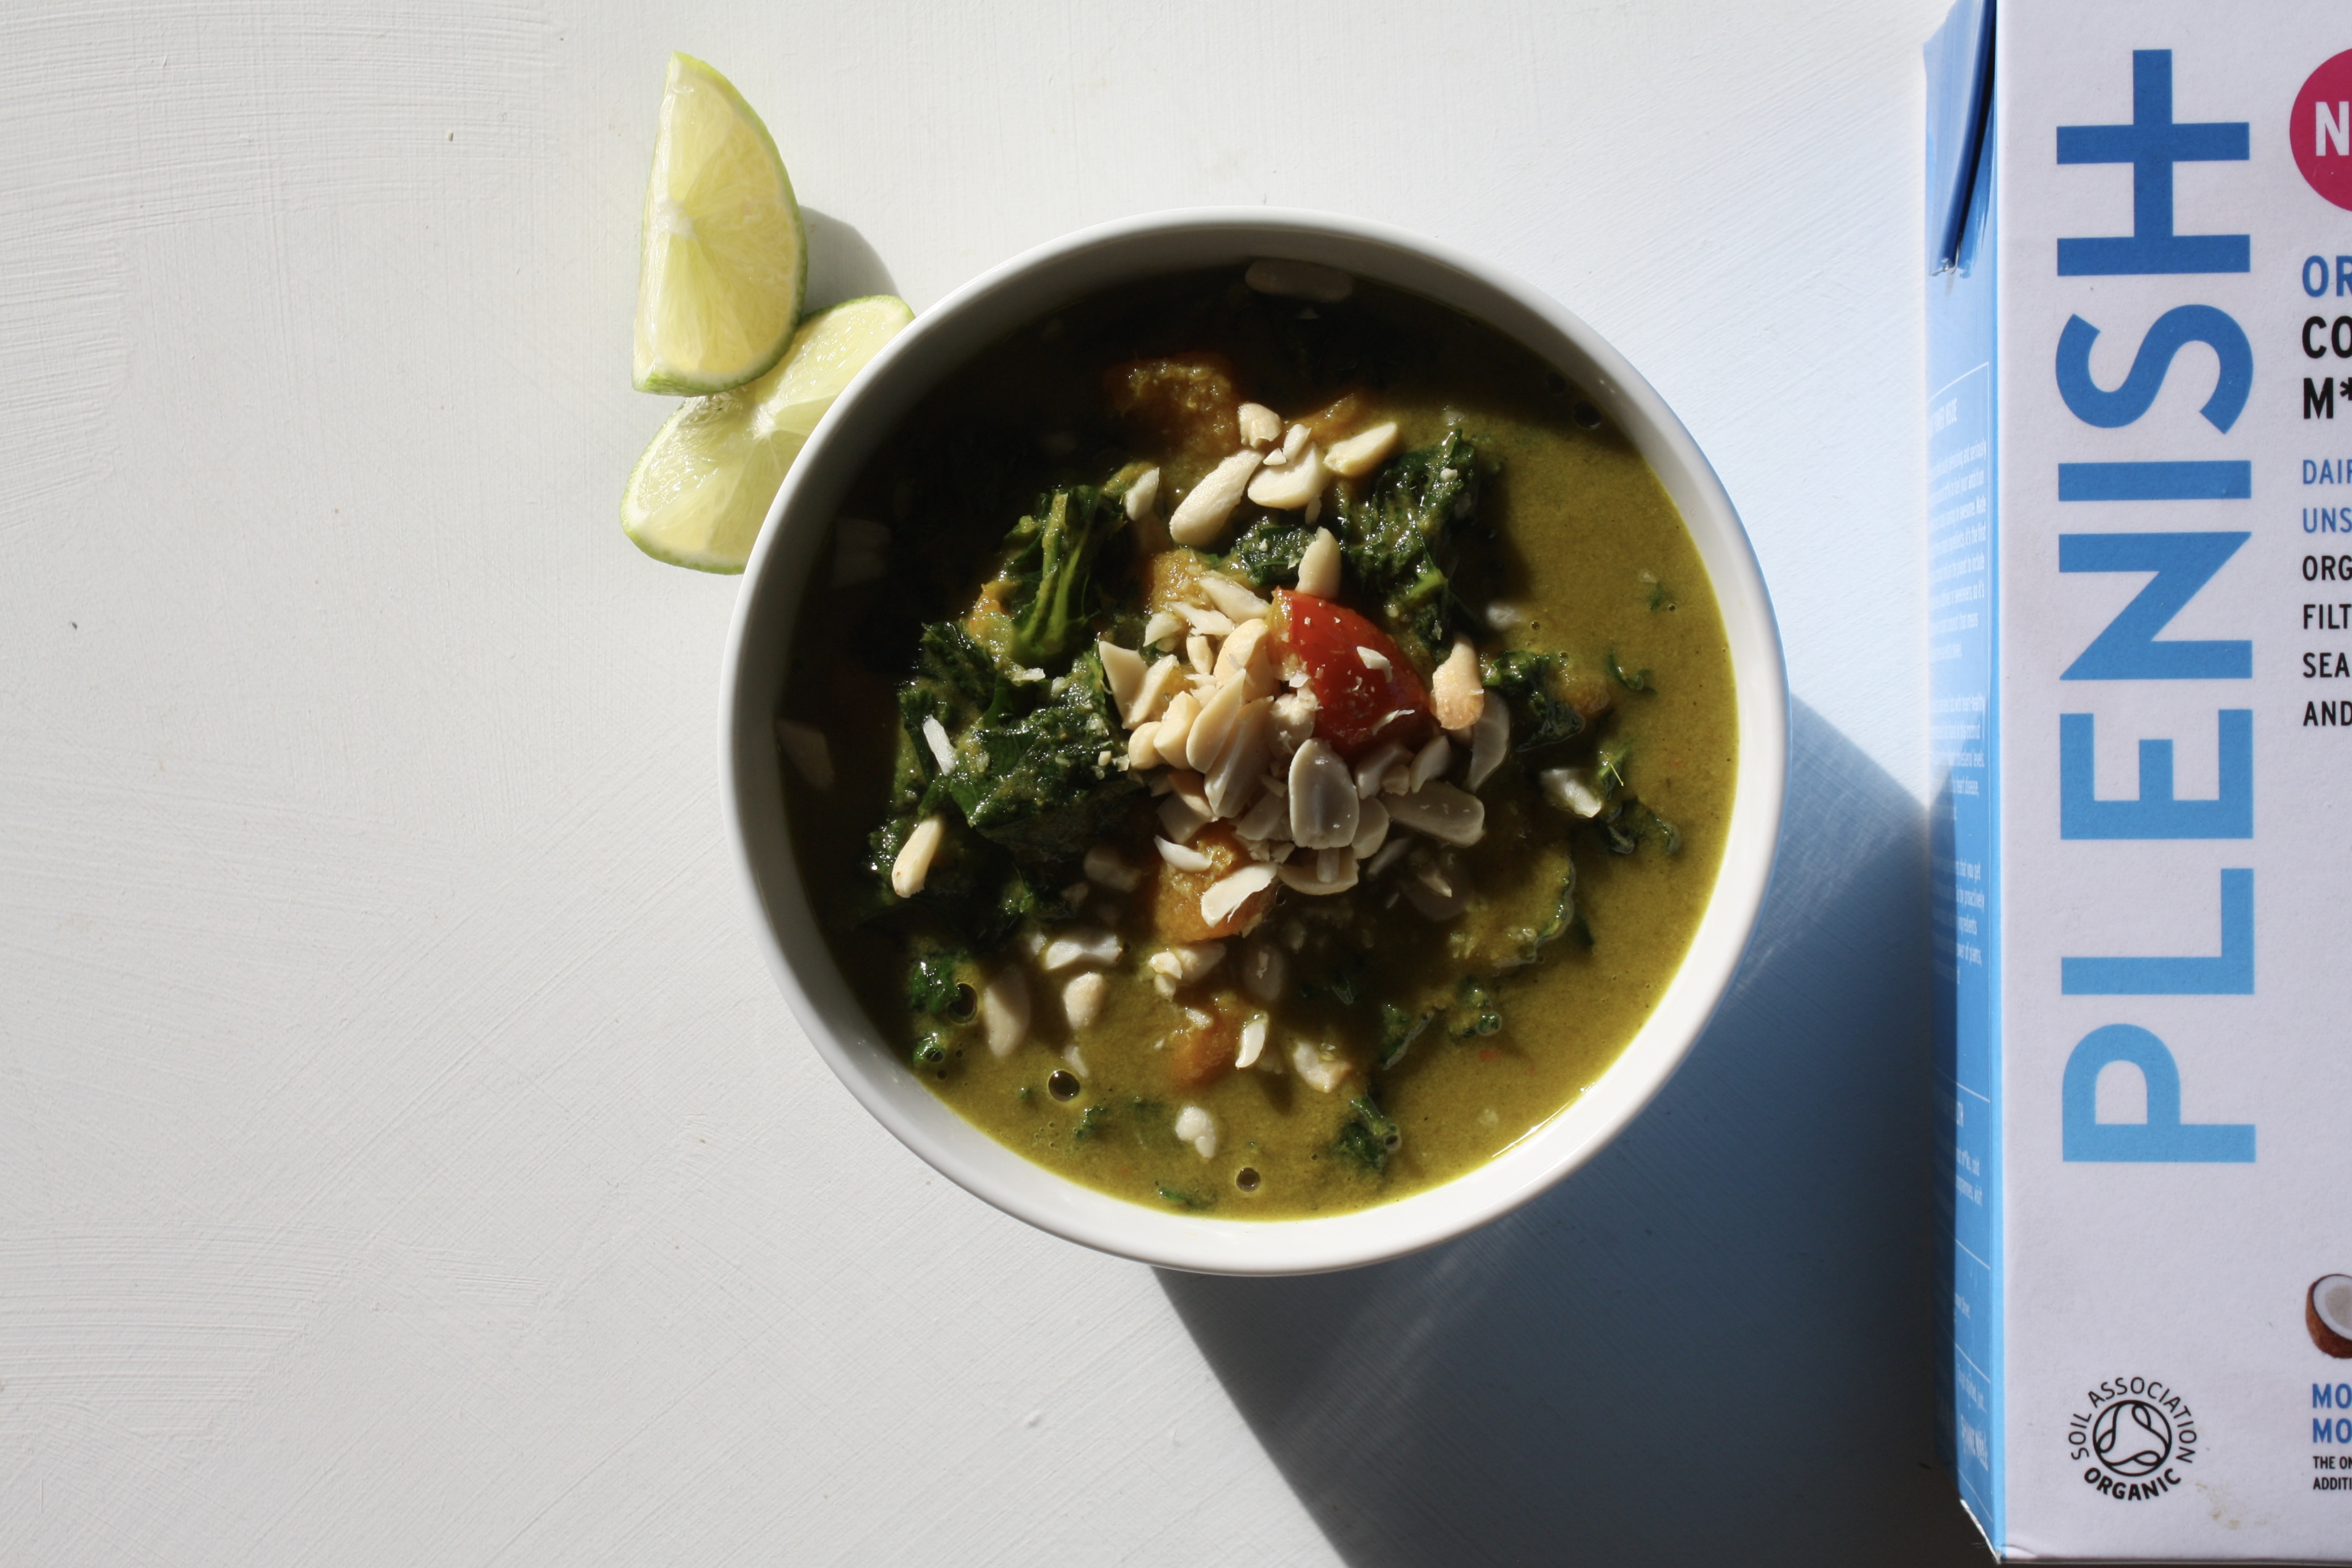 Spinach, Coconut and Lemongrass Soup